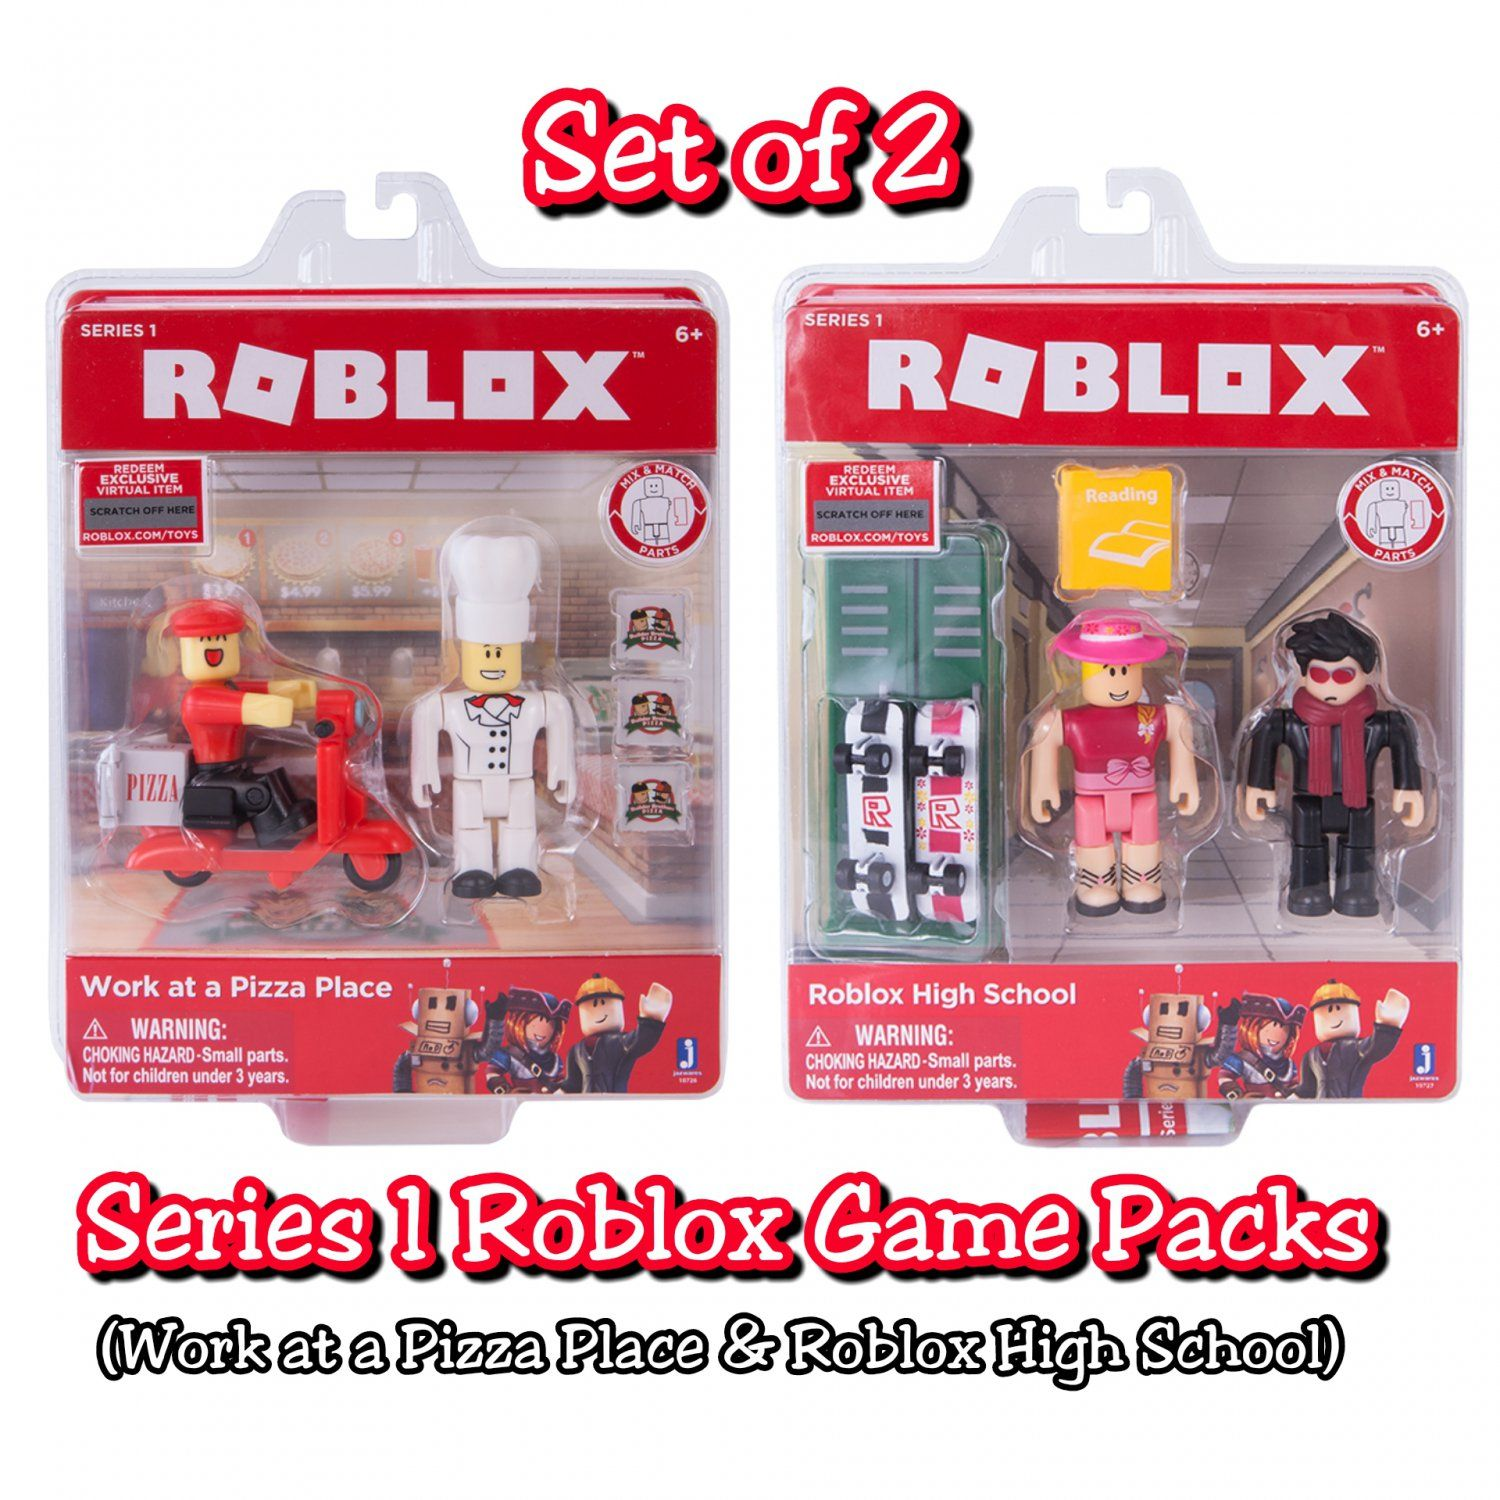 Set Of 2 Roblox Series 1 Game Packs Work At A Pizza Place 10726 Roblox High School 10727 By Jazwares Pizza Place Roblox High School